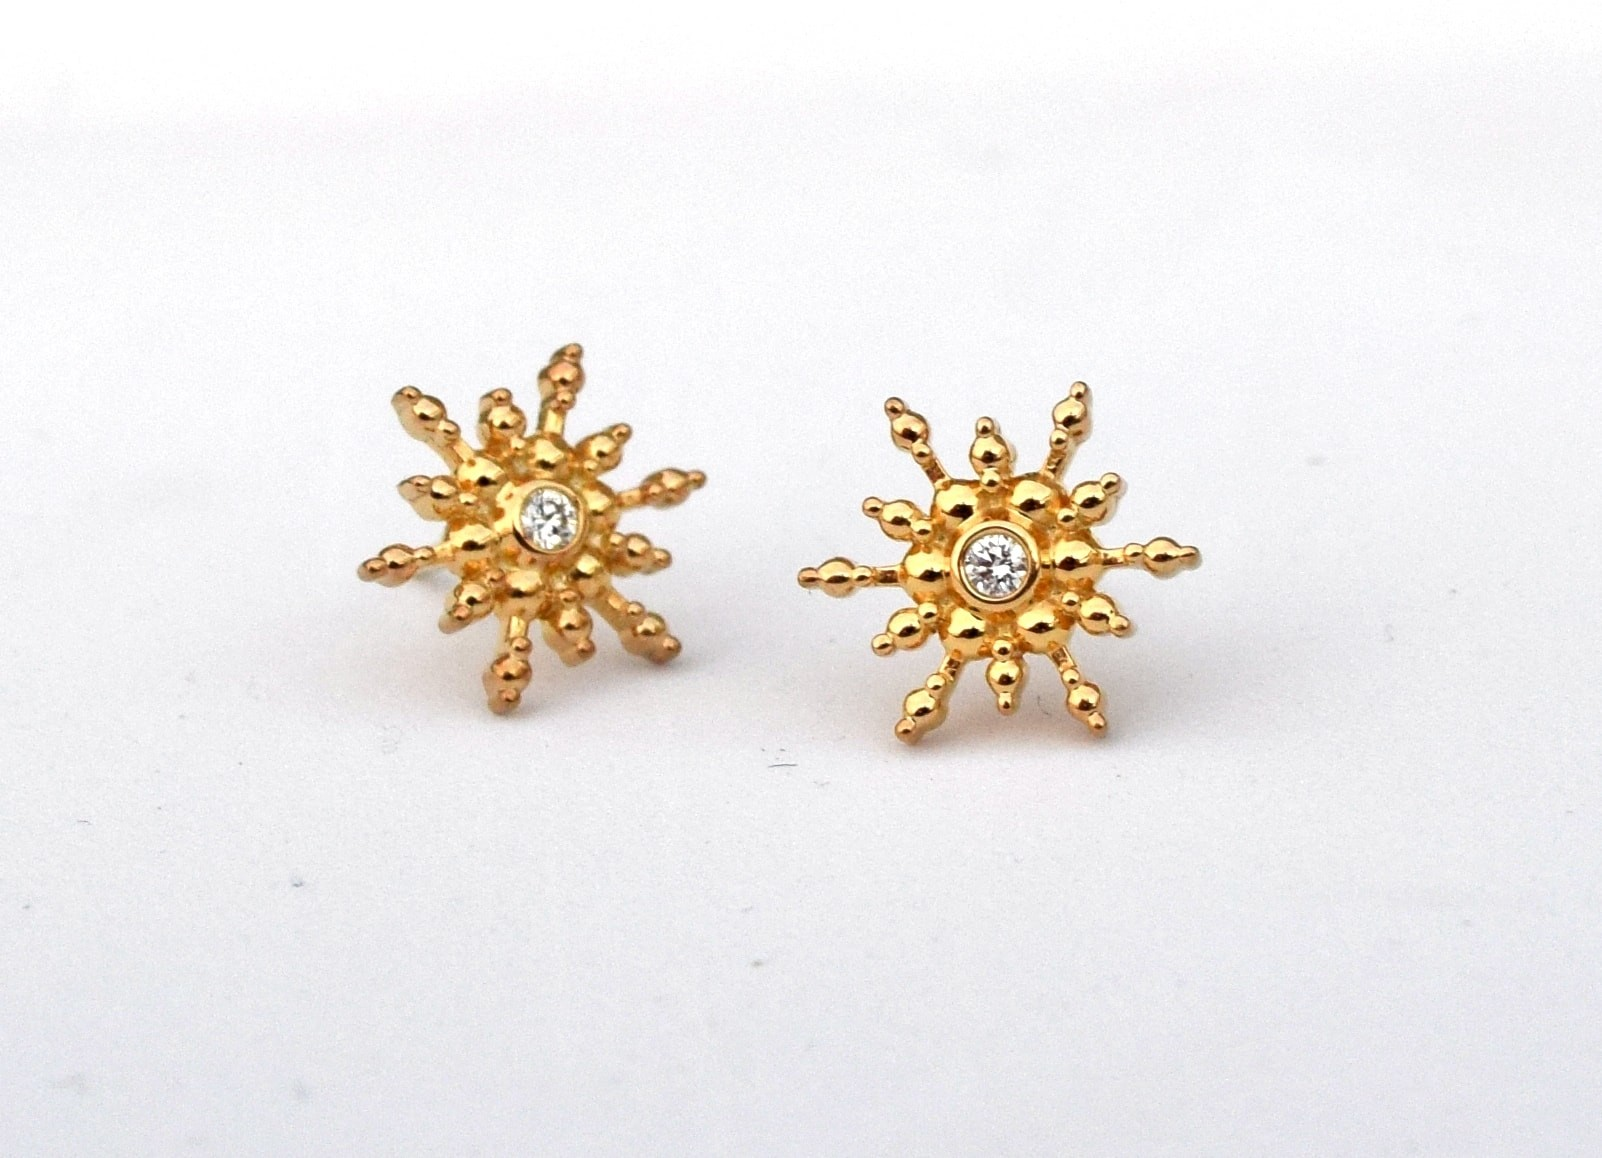 Snowflake / Starburst Diamond Stud Earrings - Silver and 18k Yellow Gold